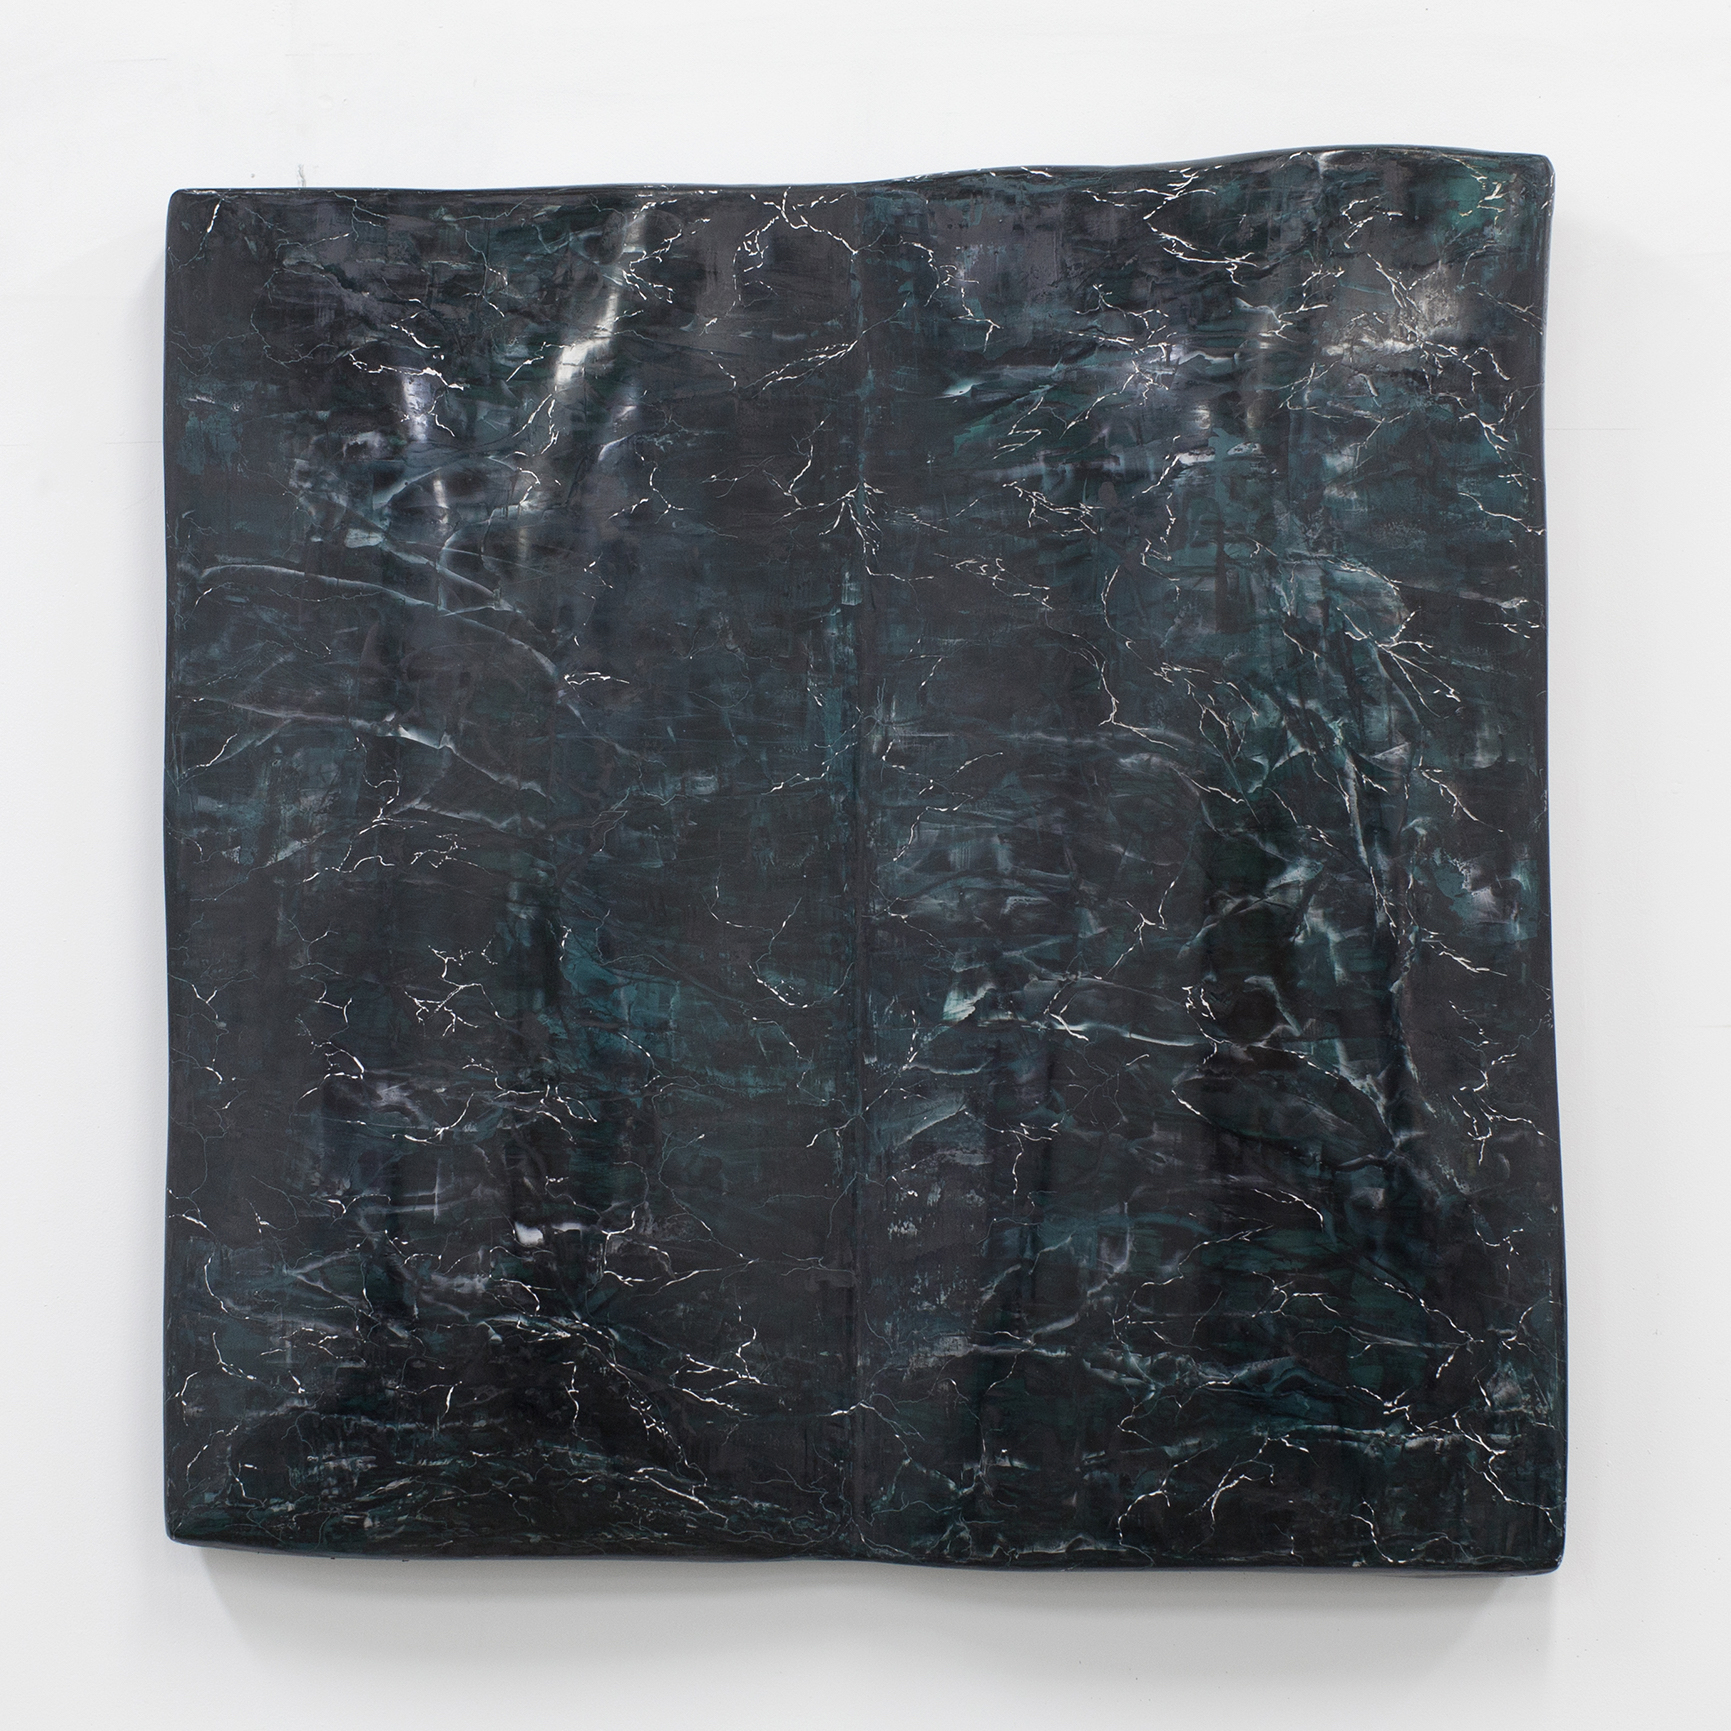 Lydia Enriquez,  Untitled (Tome) , plaster tint and wax on shaped panel, 25 x 25 x 5 inches, 2017